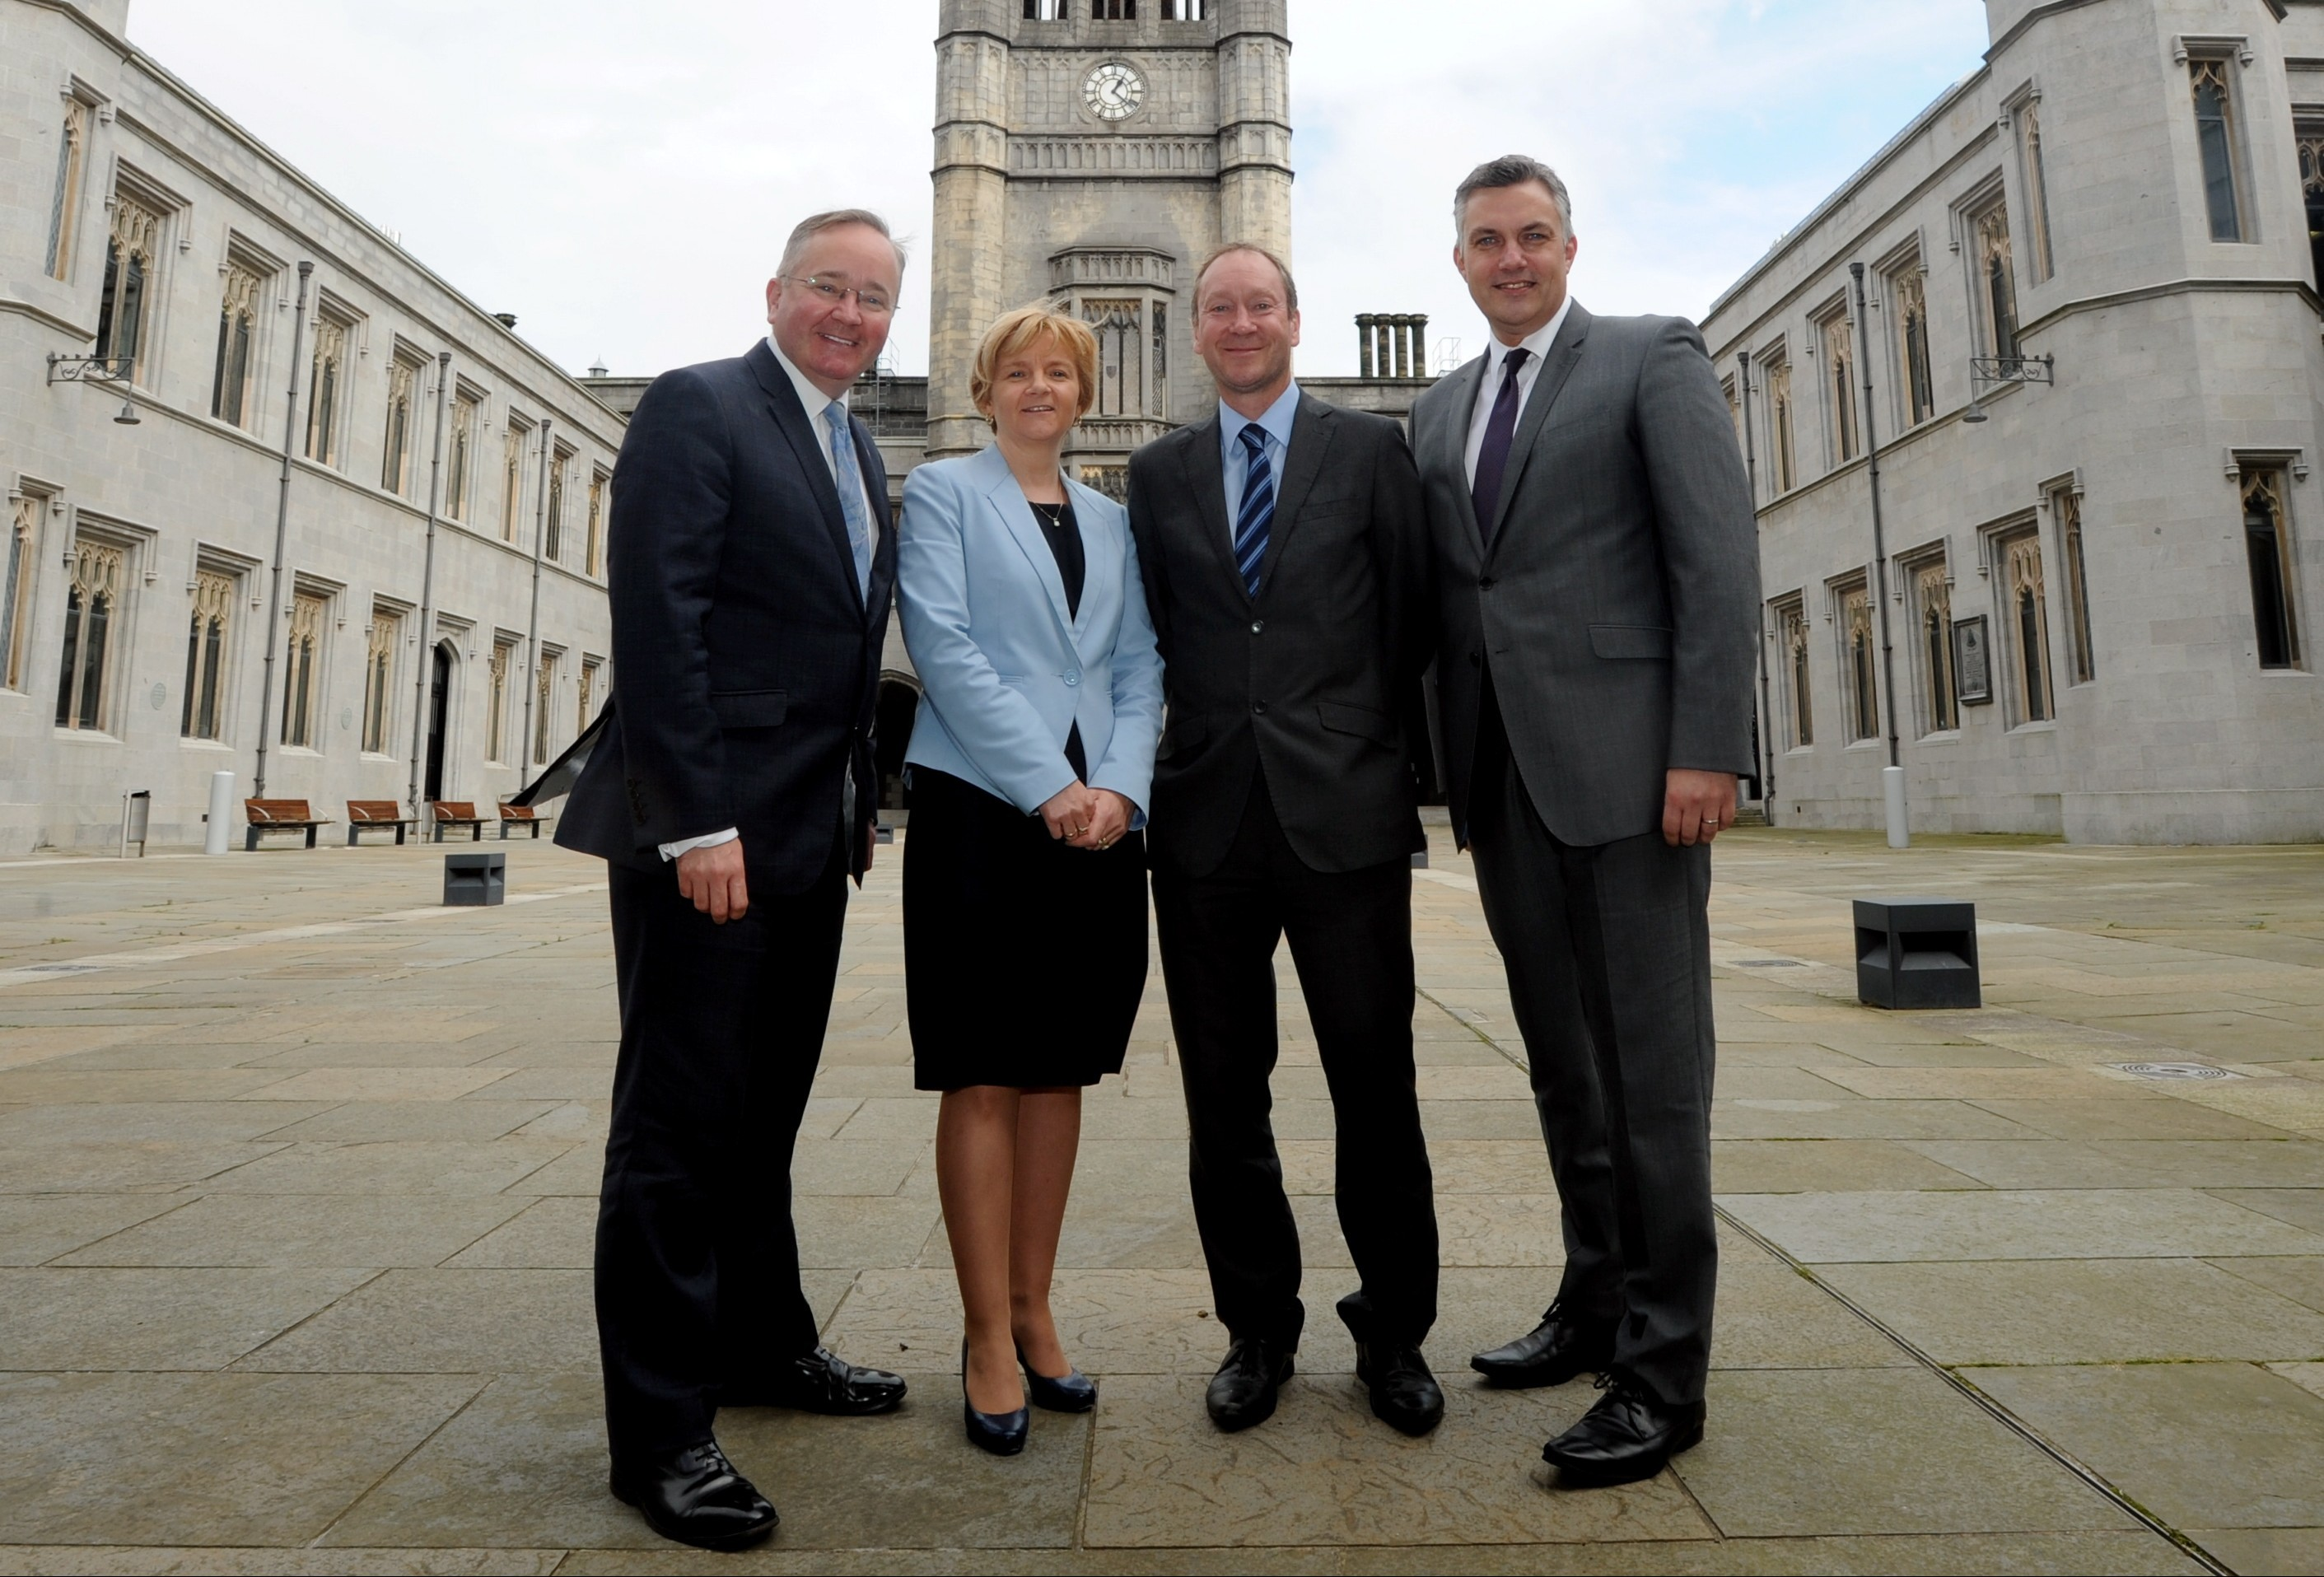 From left, Gordon Matheson, former leader of Glasgow City Council, Jenny Laing, leader of Aberdeen City Council, Jackie Burns, deputy leader of South Lanarkshire Council, and Mark Macmillan, leader of Renfrewshire Council.